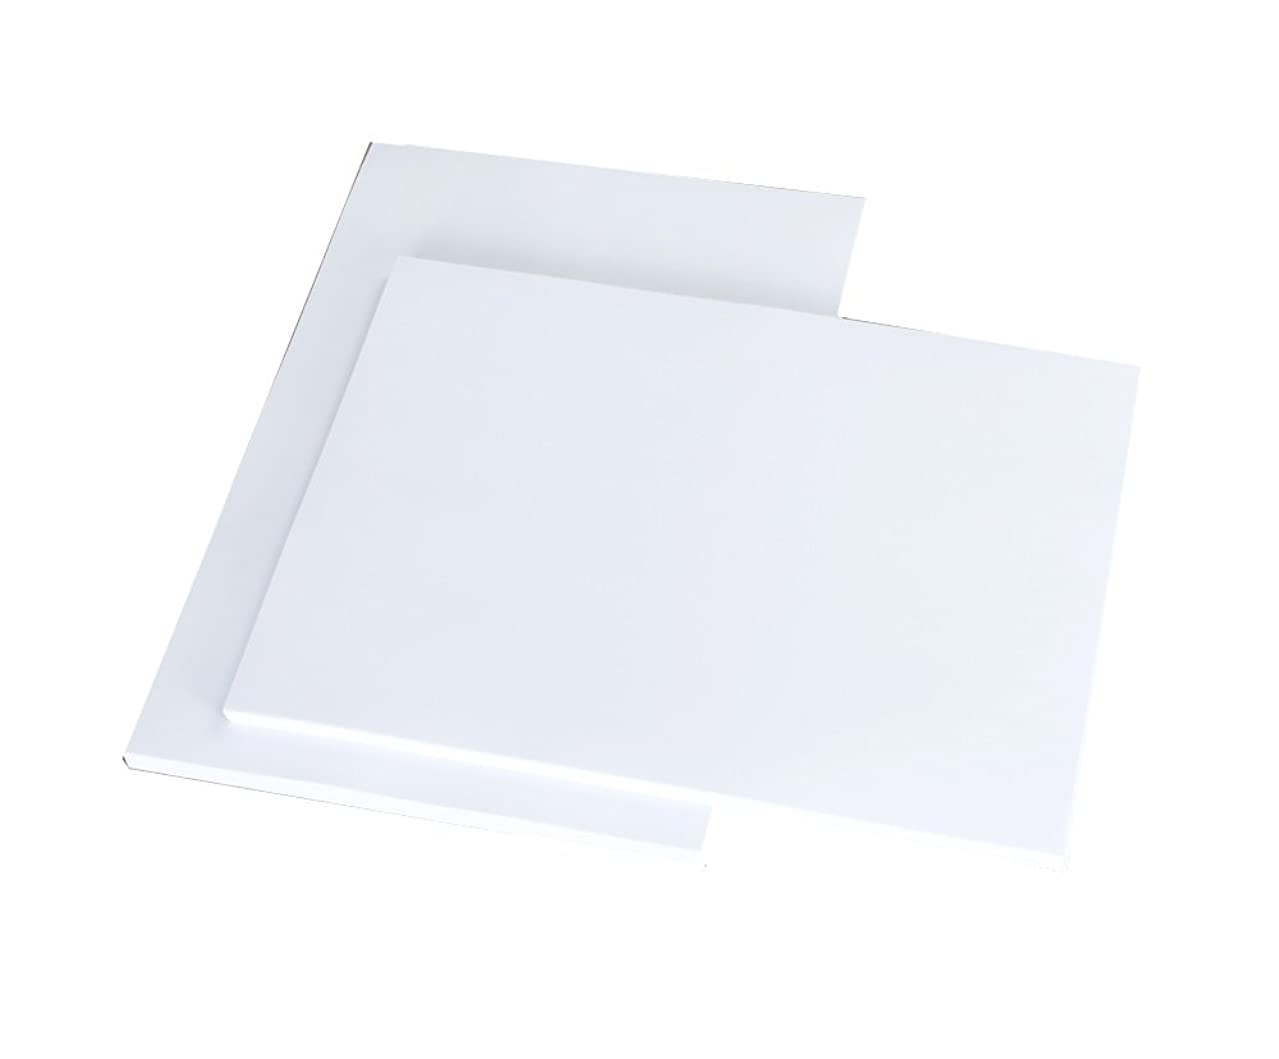 House of Card & Paper A4 160 GSM Card - White (Pack of 50 Sheets)